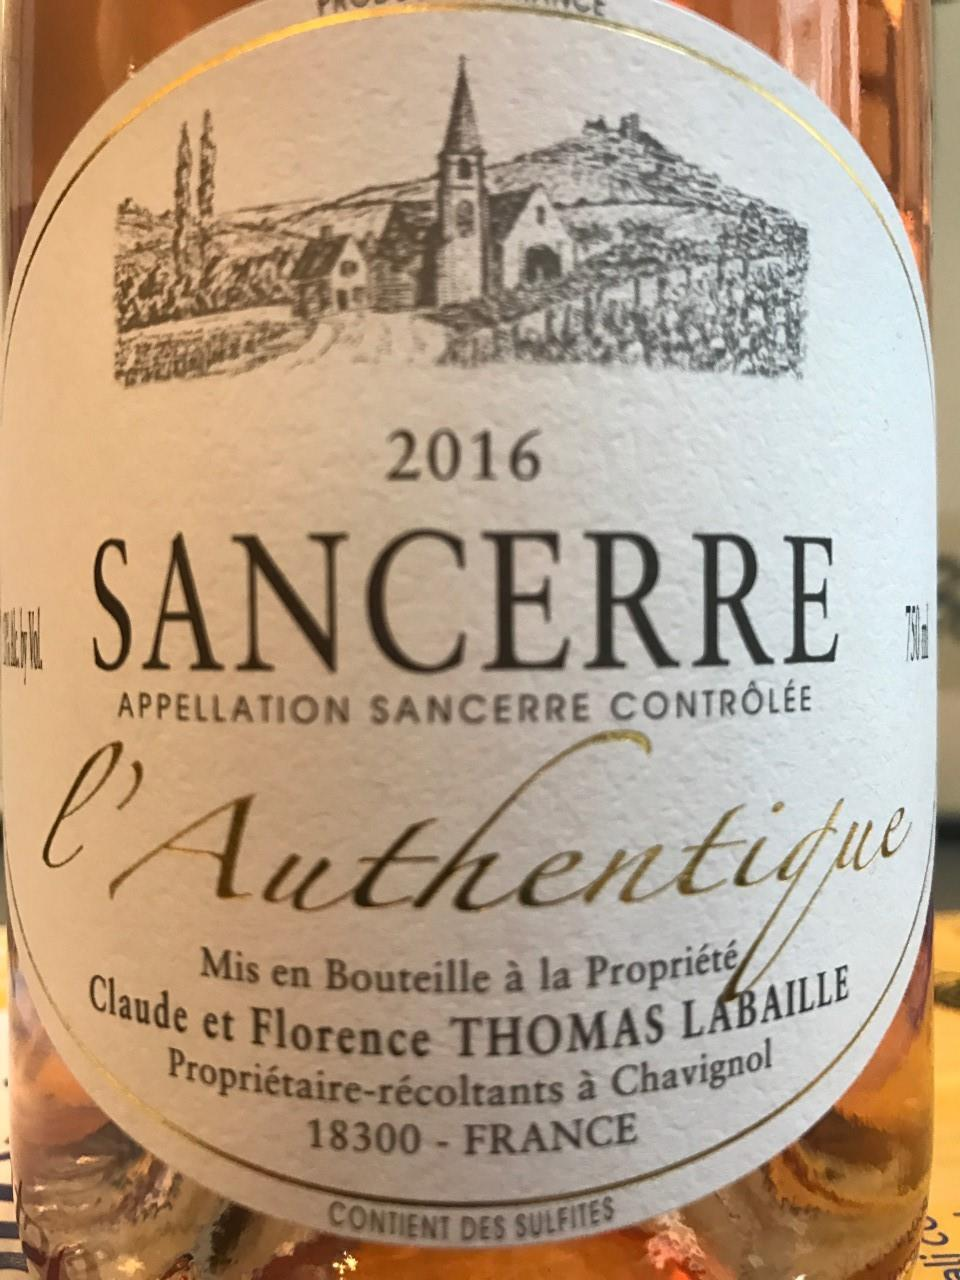 Thomas-Labaille 2018 Sancerre Rosé Authentique